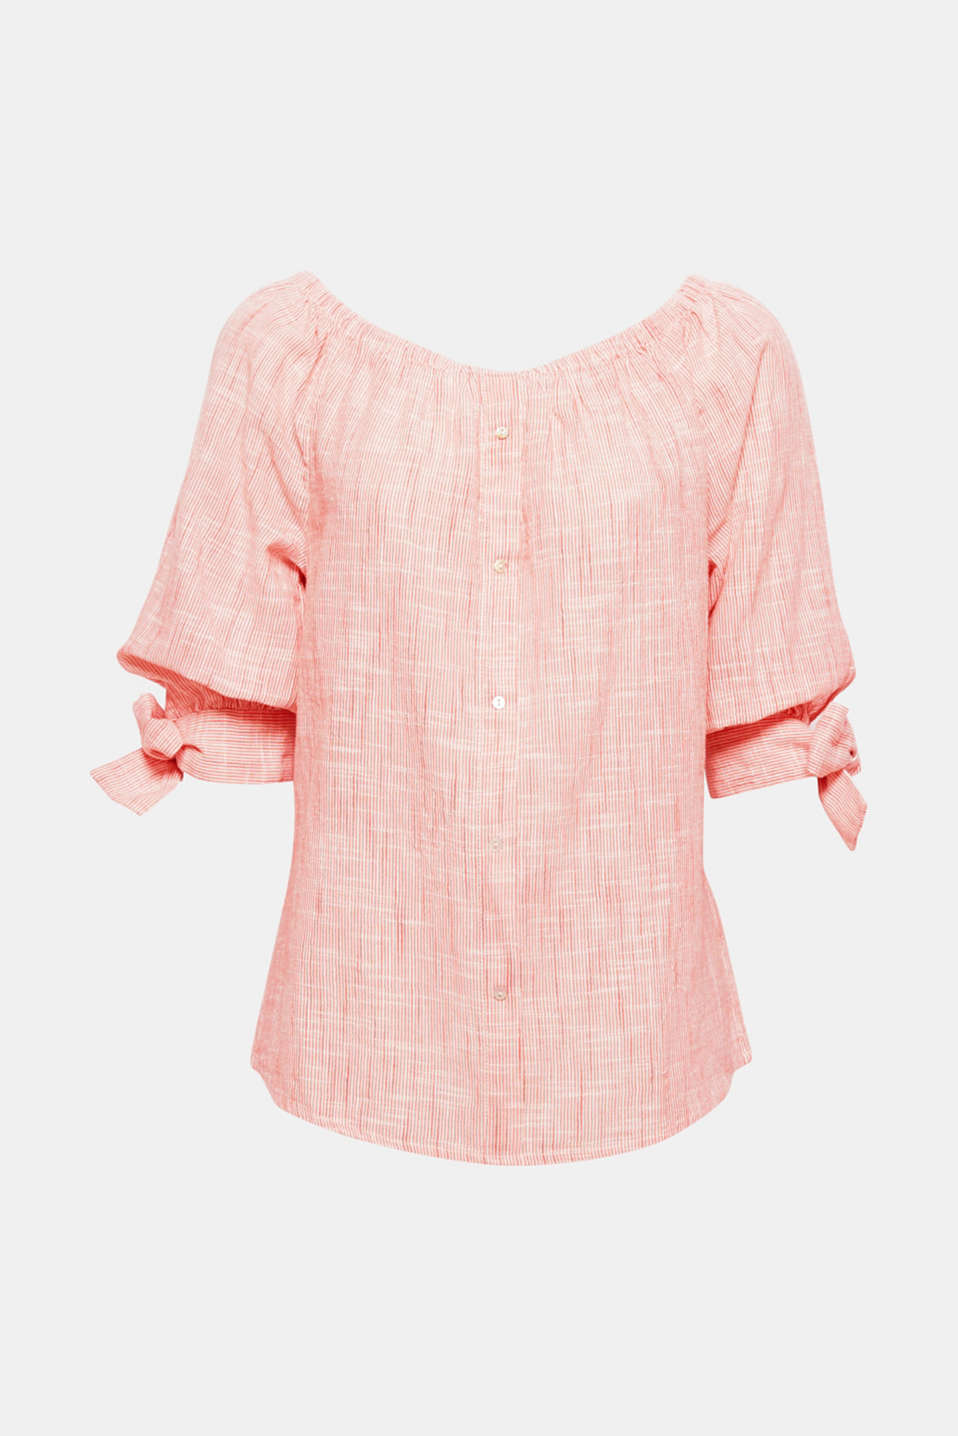 Show off your shoulders! Showcase your shoulders to maximum effect with this off-the-shoulder blouse made of lightweight cotton with a striped pattern and sleeve ties.